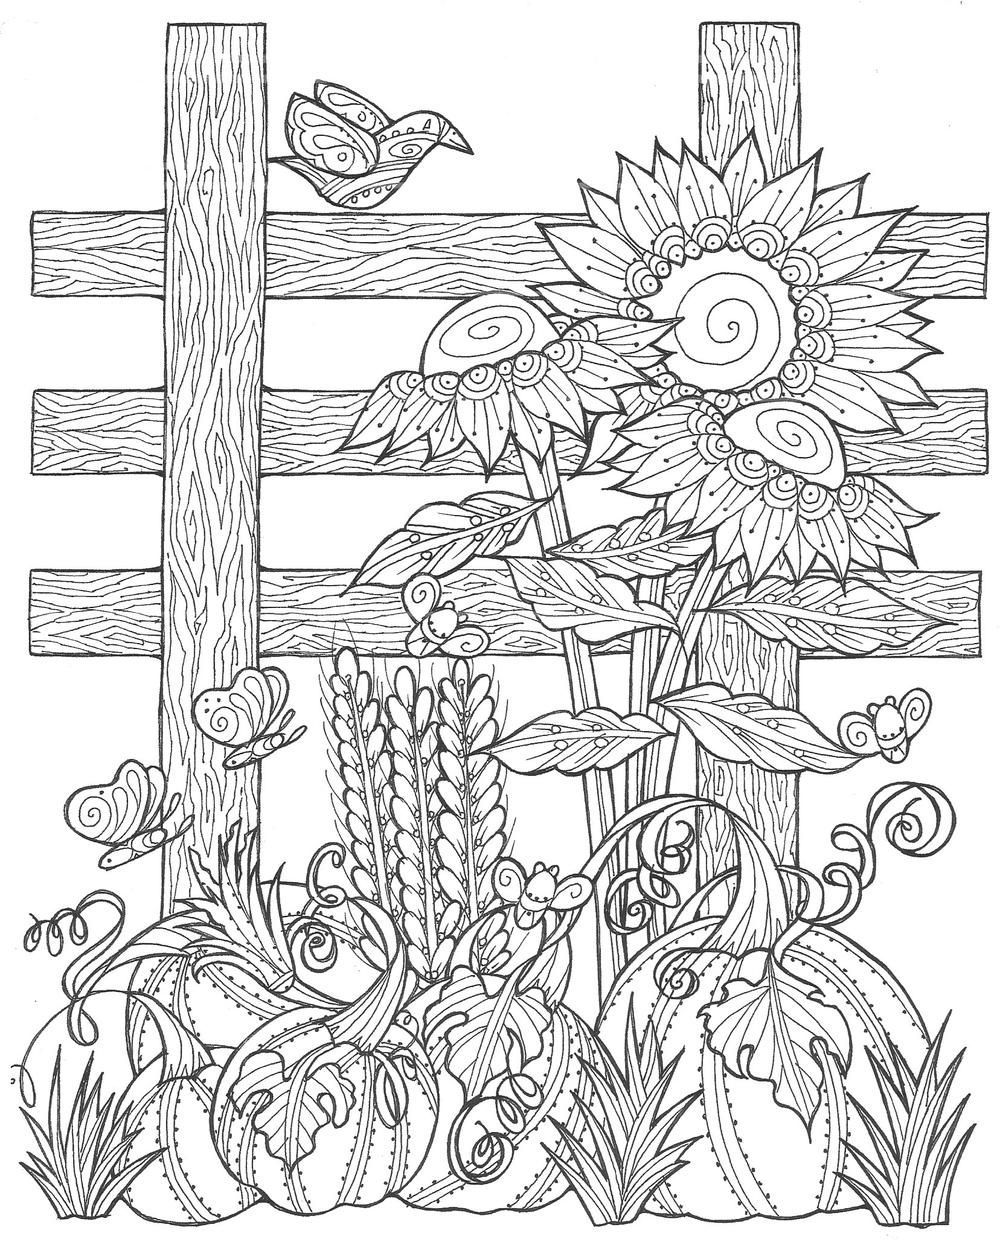 Sunflower Pumpkin Patch Coloring Page Sunflower Coloring Pages Pumpkin Coloring Pages Fall Coloring Pages